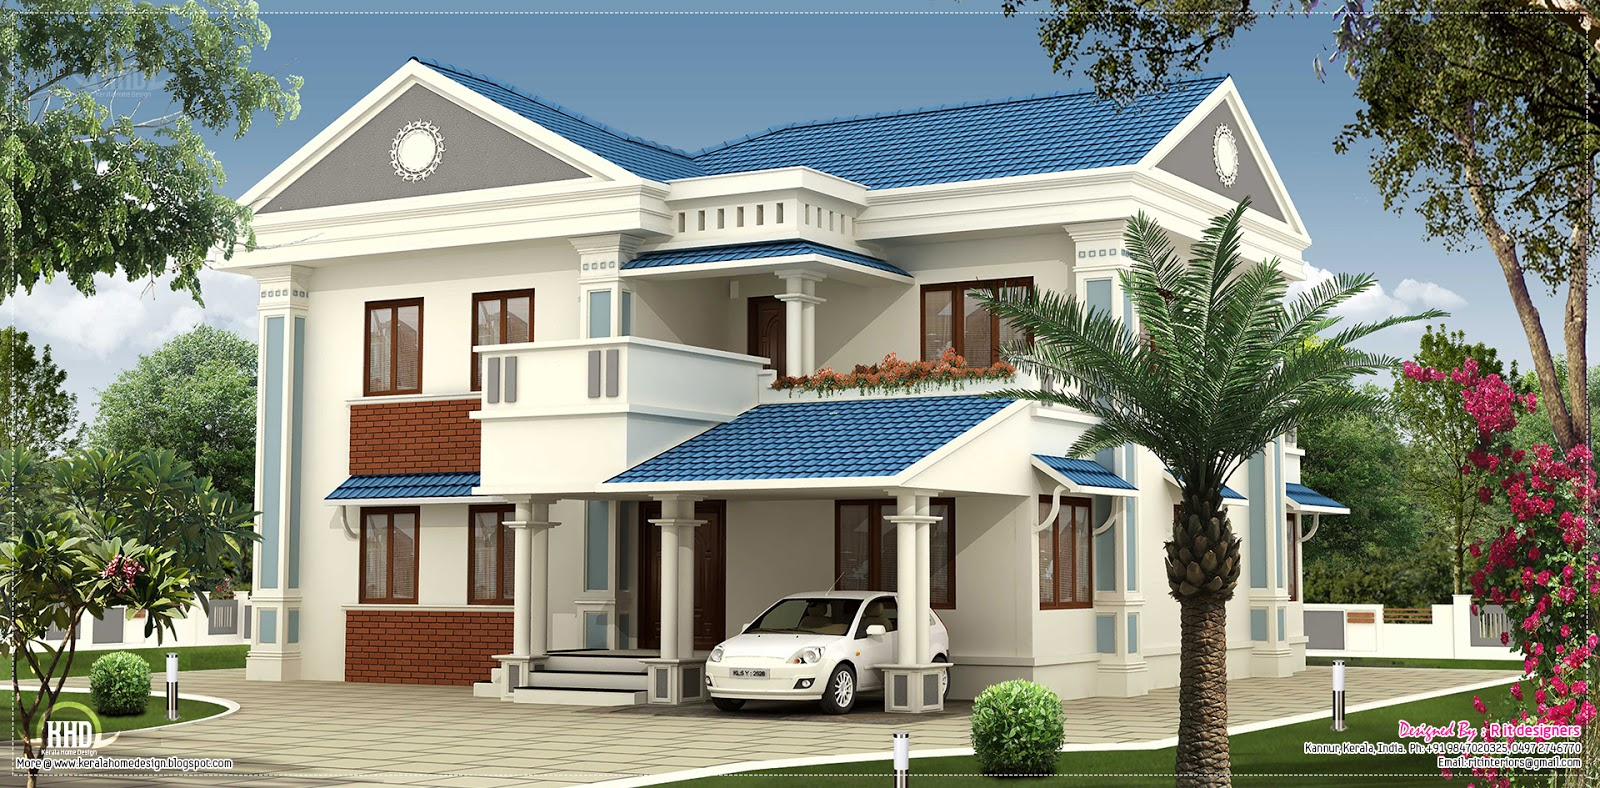 nice home design - Get Small Modern House Plans Under 2000 Sq Ft PNG